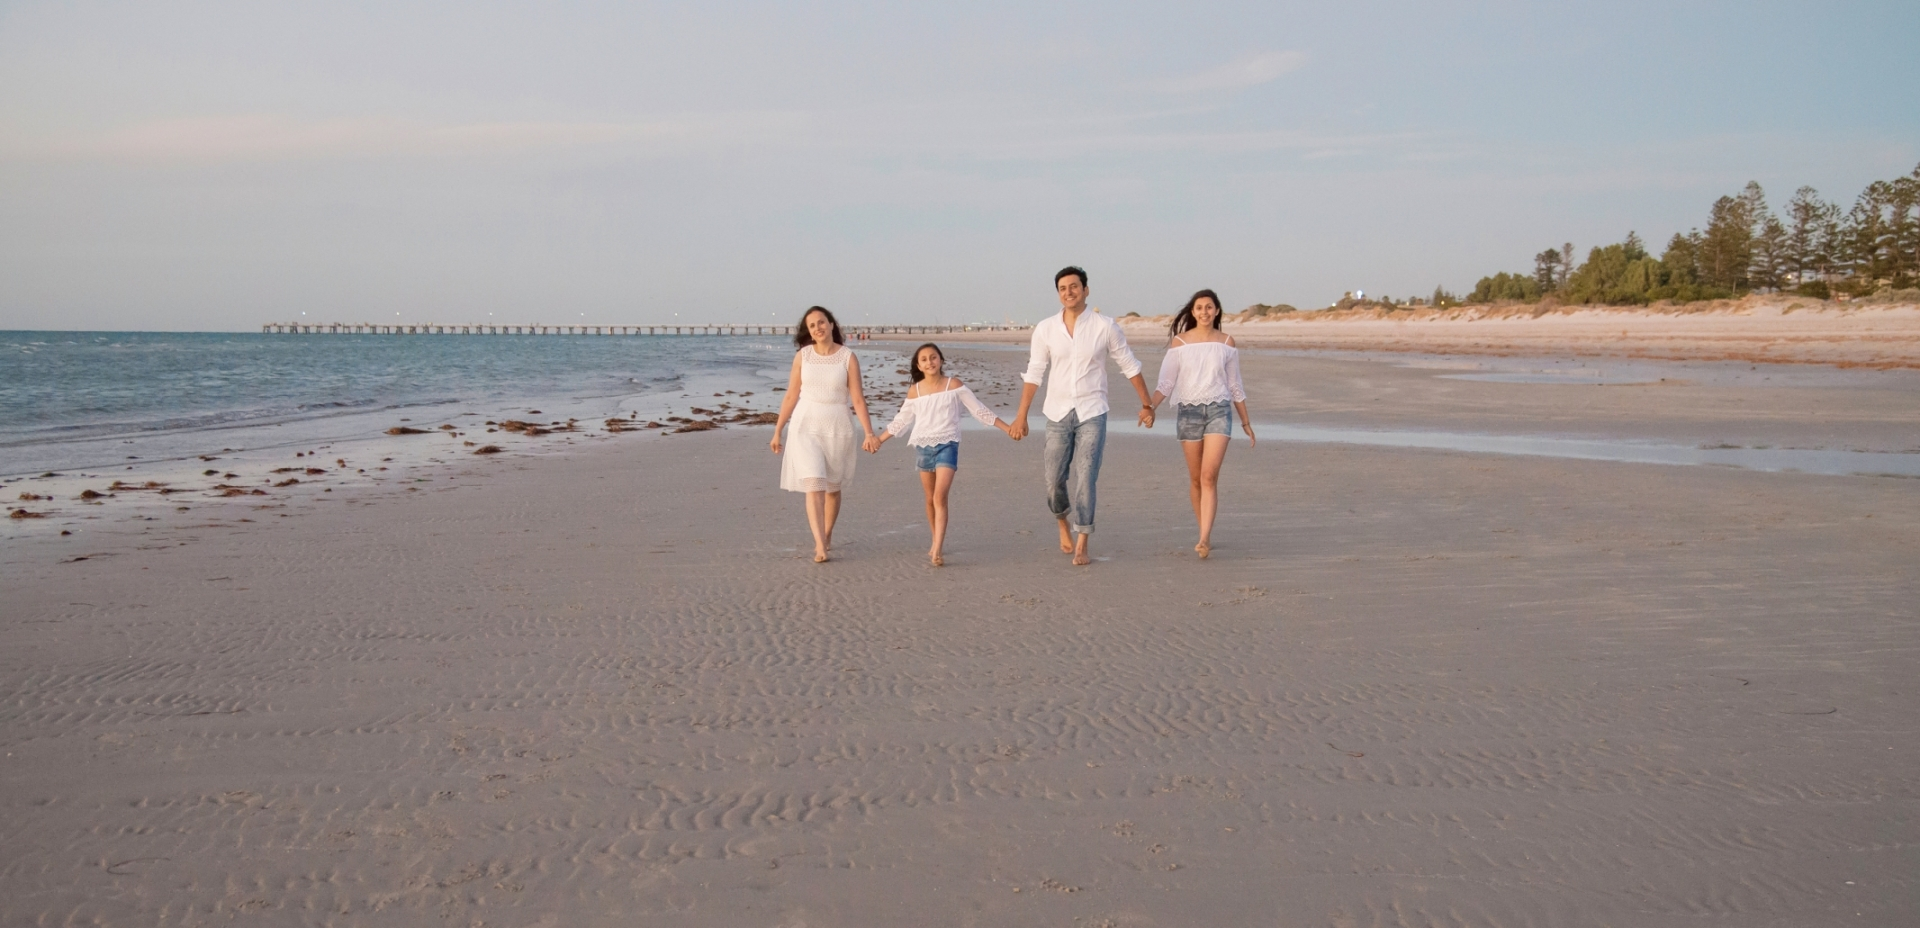 A photo of a family walking on a beach